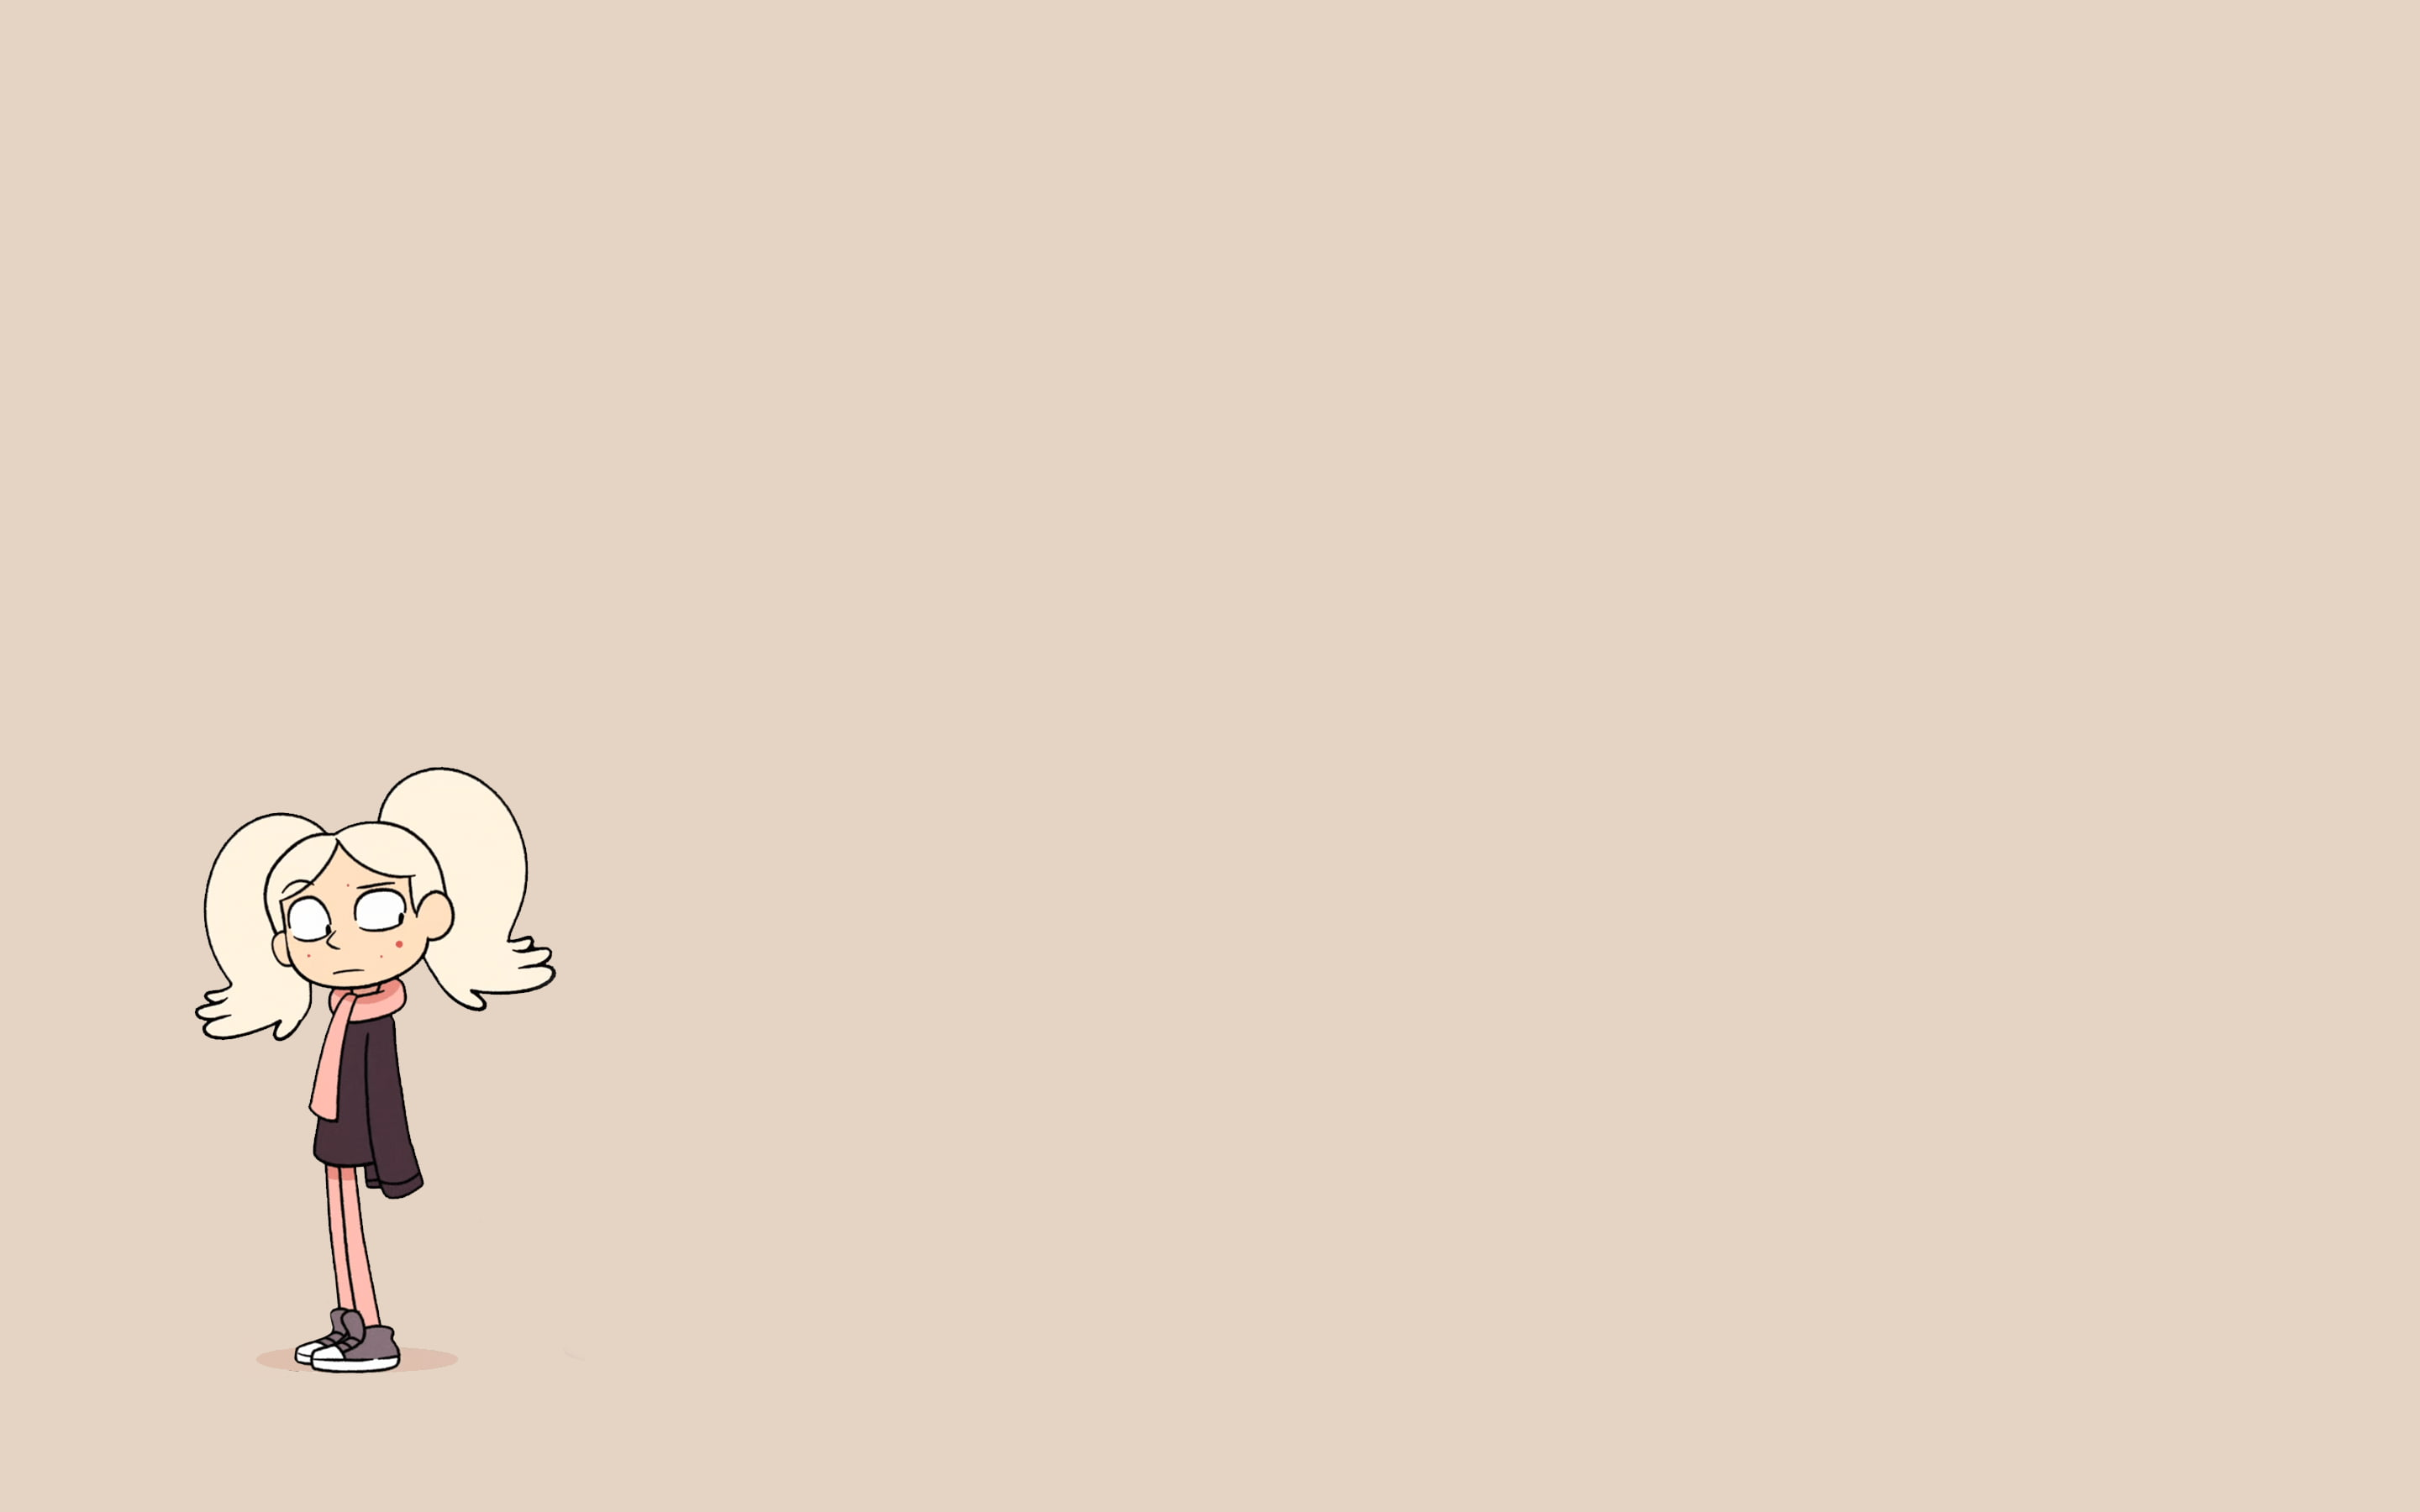 2880x1800 Hilda (Unist), Netflix, The Ghost, minimalism, Mean Girl, Marra ...